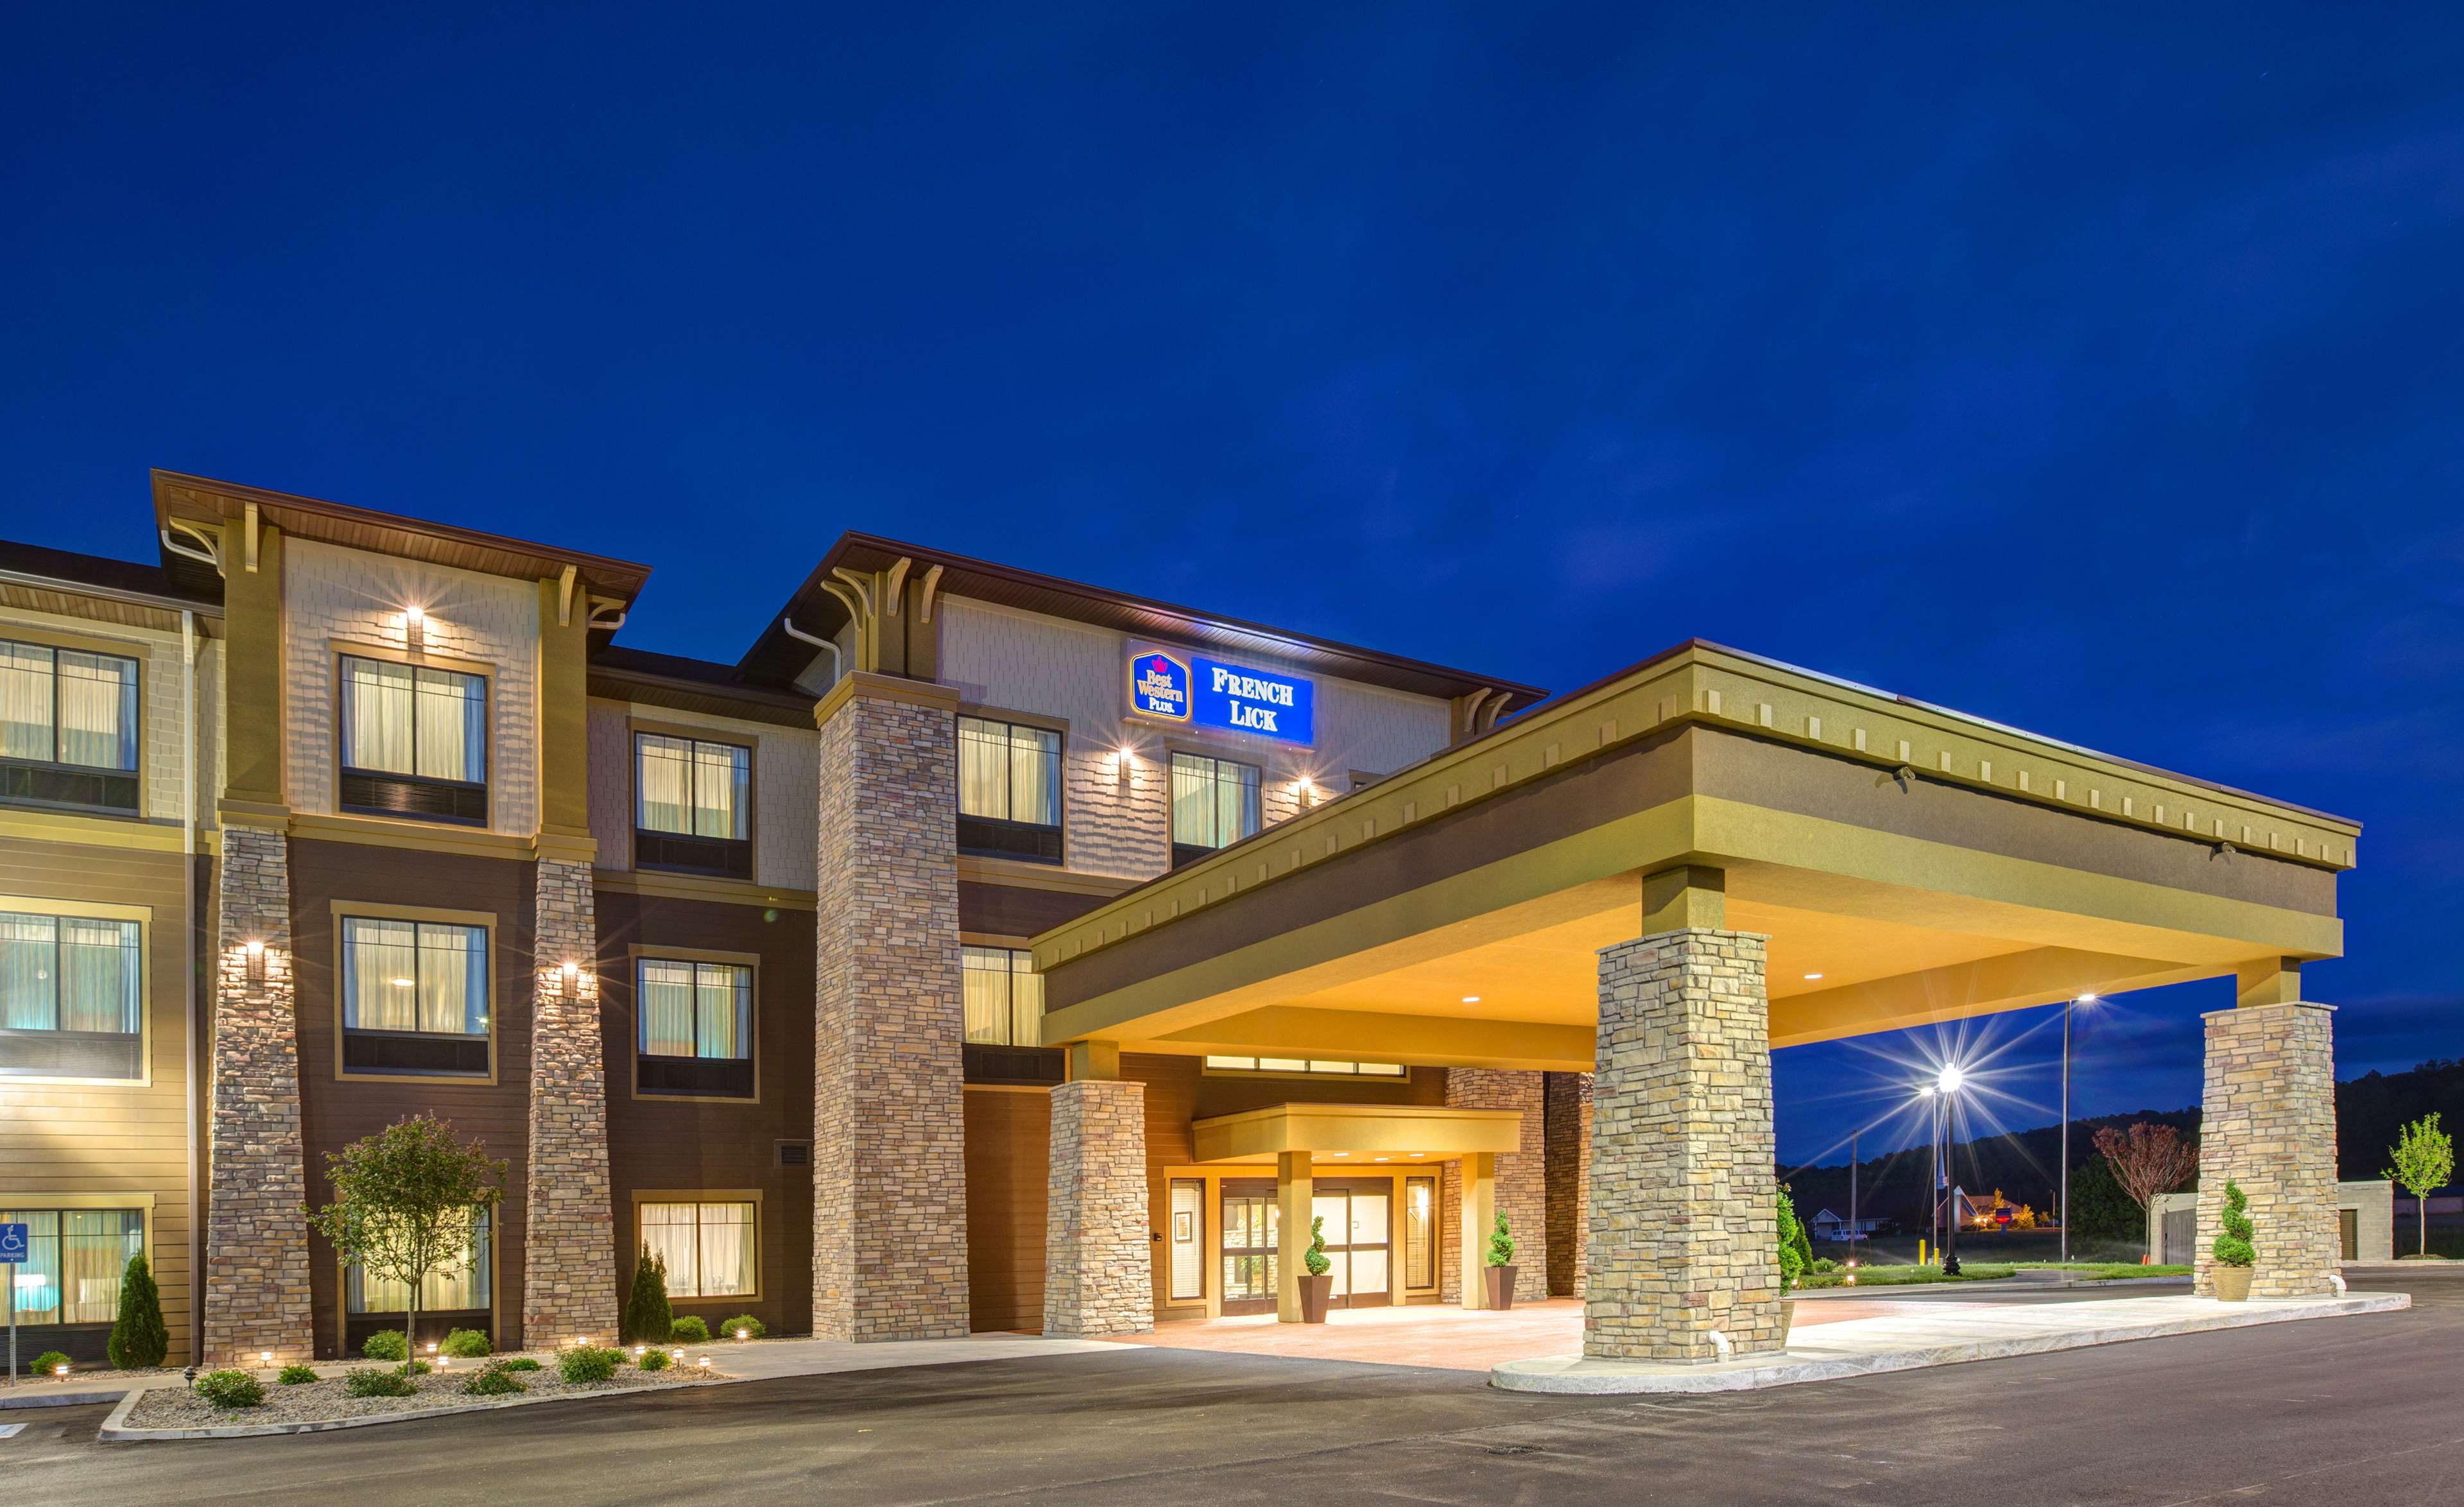 Best Western Plus French Lick image 34